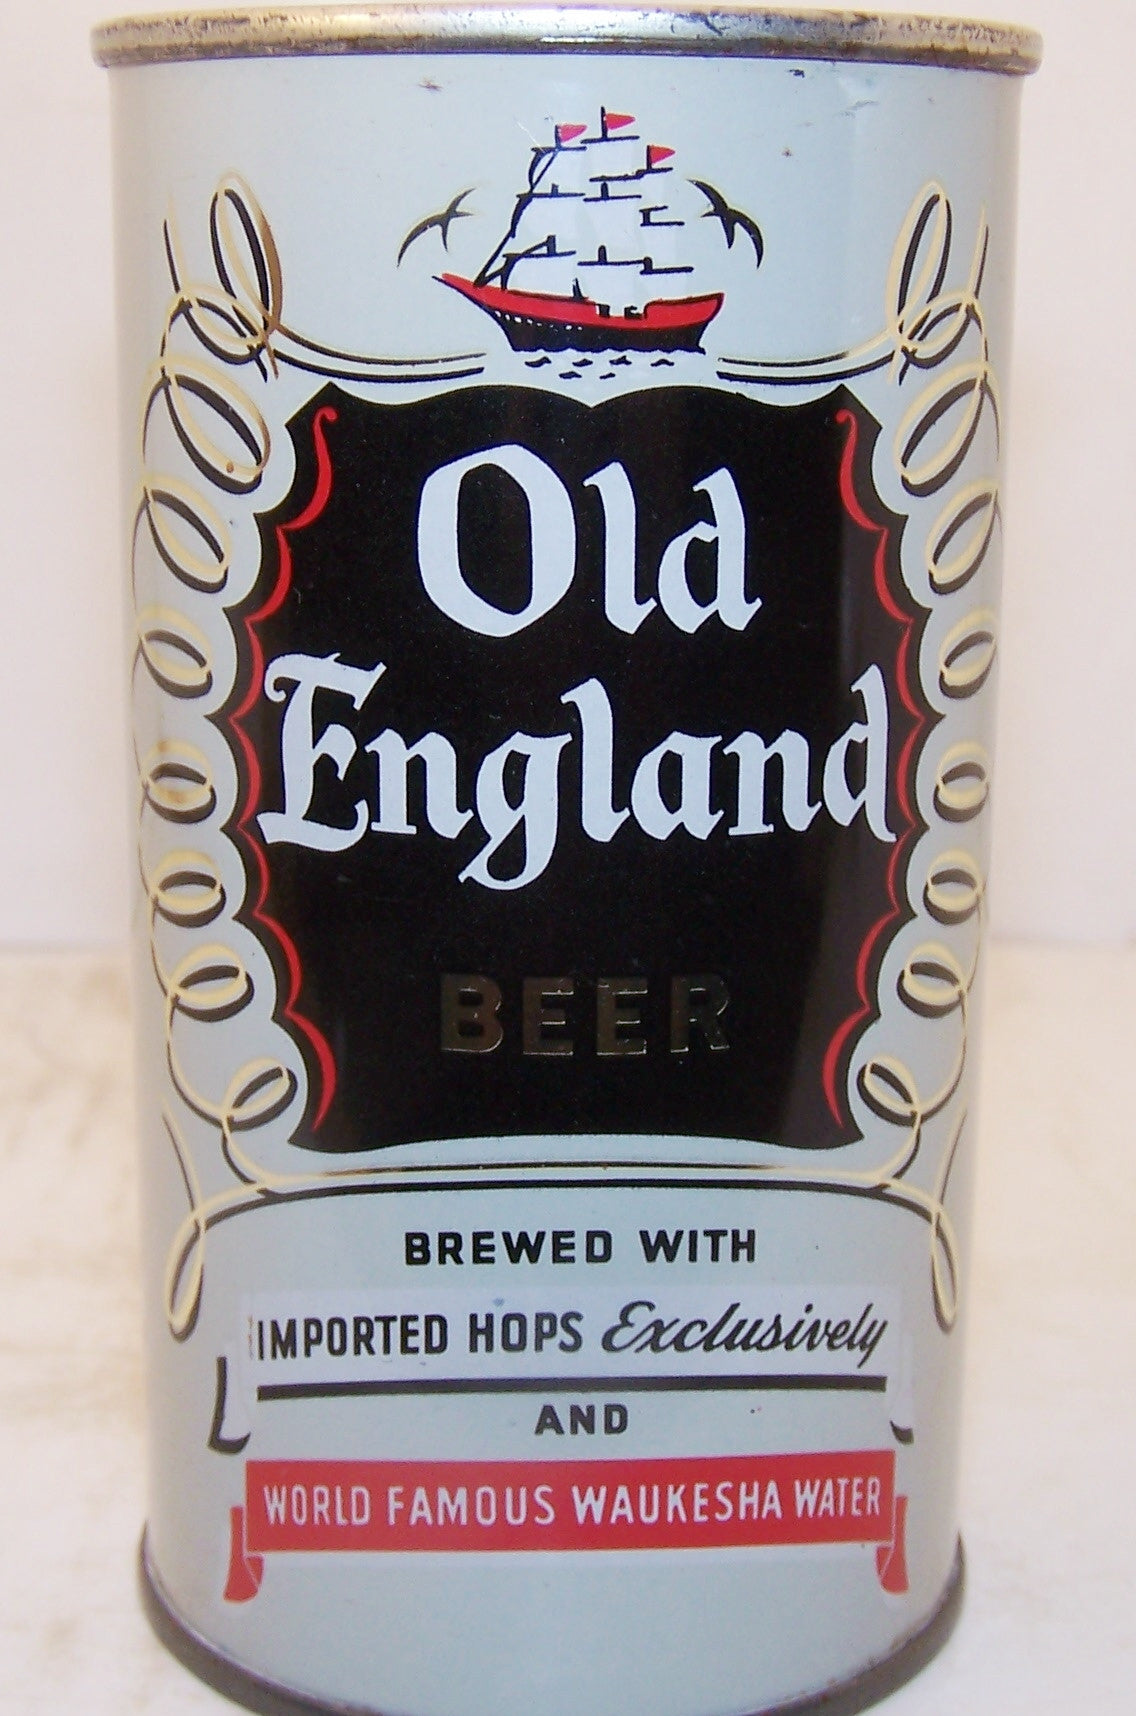 Old England Beer, USBC 106-9, Grade A1+ Sold on 4/6/15